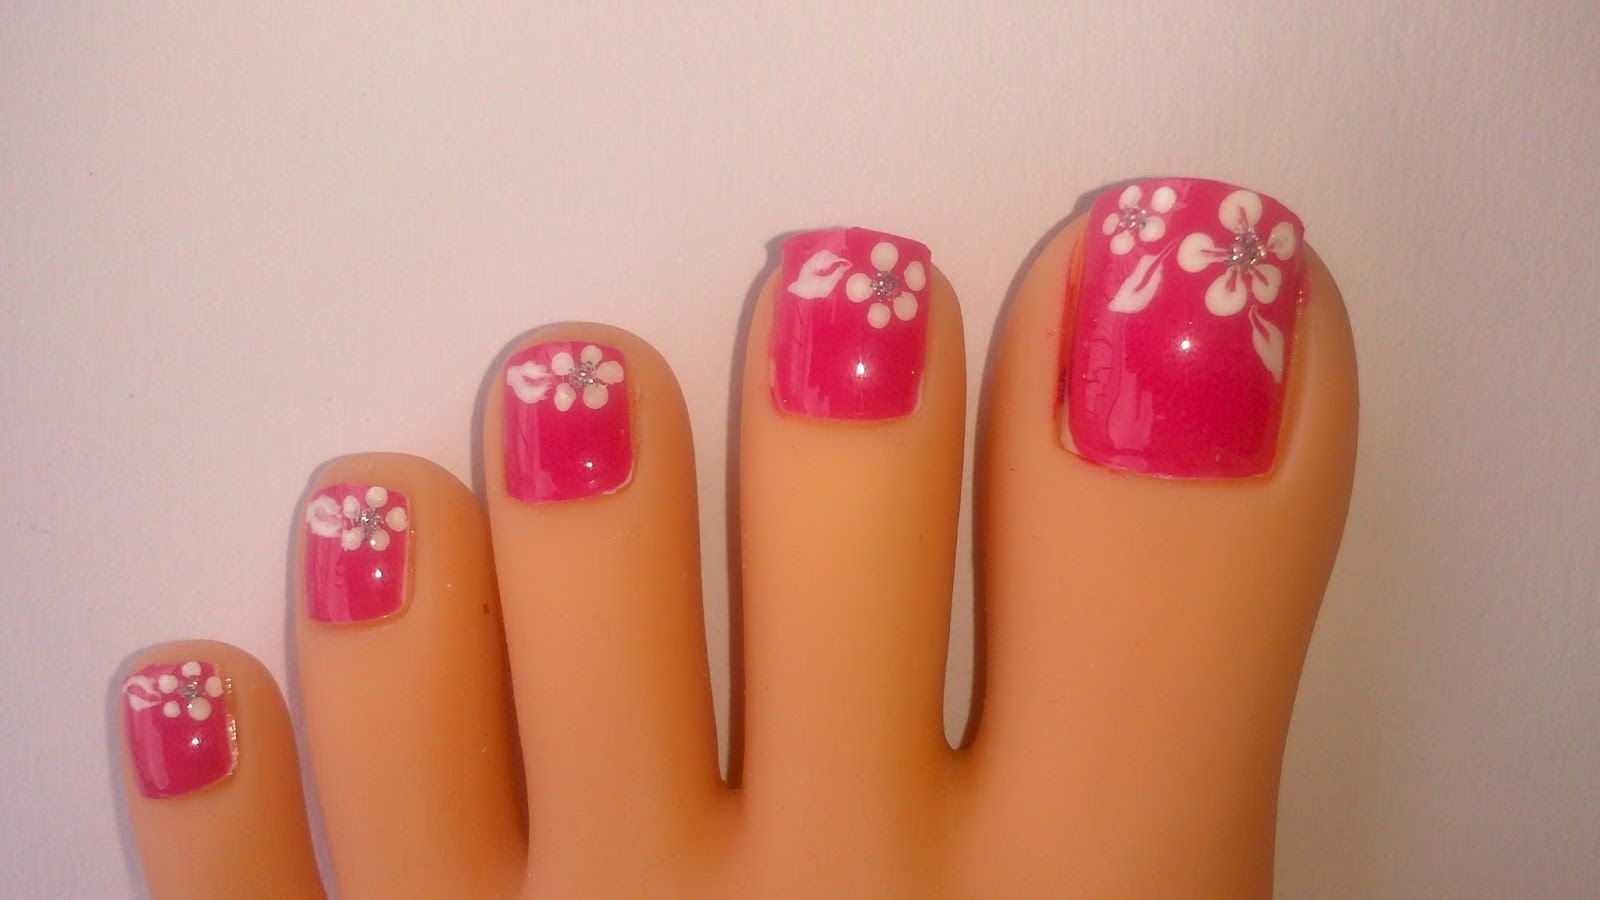 1000 images about toe nails on pinterest feet nails nail design and pedicures - Toe Nail Designs Ideas